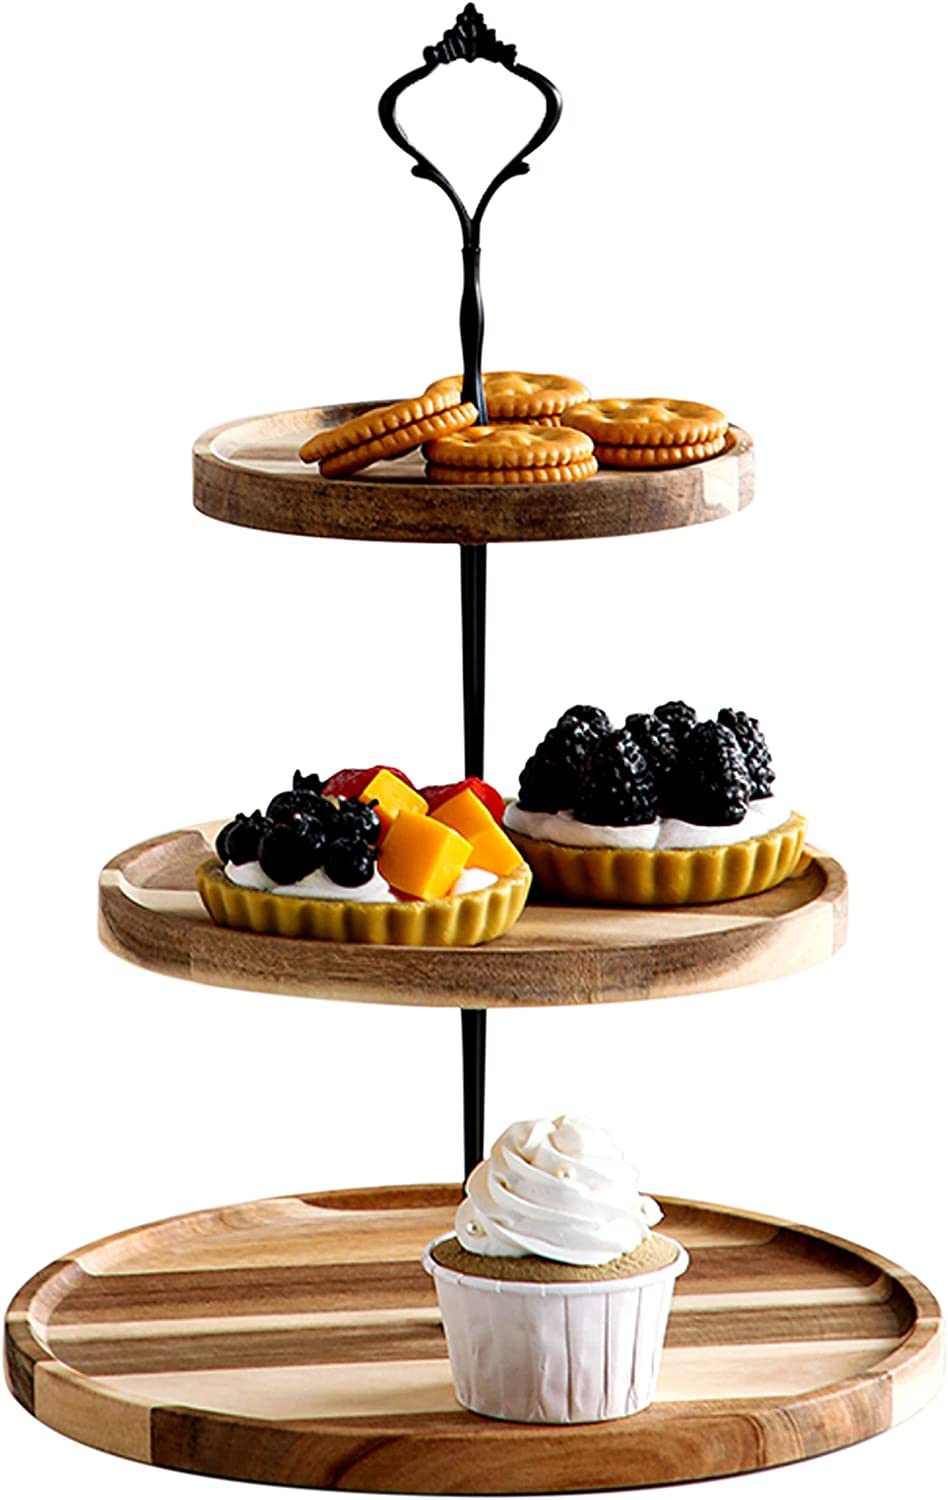 Refrase Life 3 Tier Cupcake Stand Wood | Tiered Serving Tray for Dessert Table | Farmhouse Decor, Tea Party Decor | Decorative Serving Tray, Dessert Tray, Medium 14.5